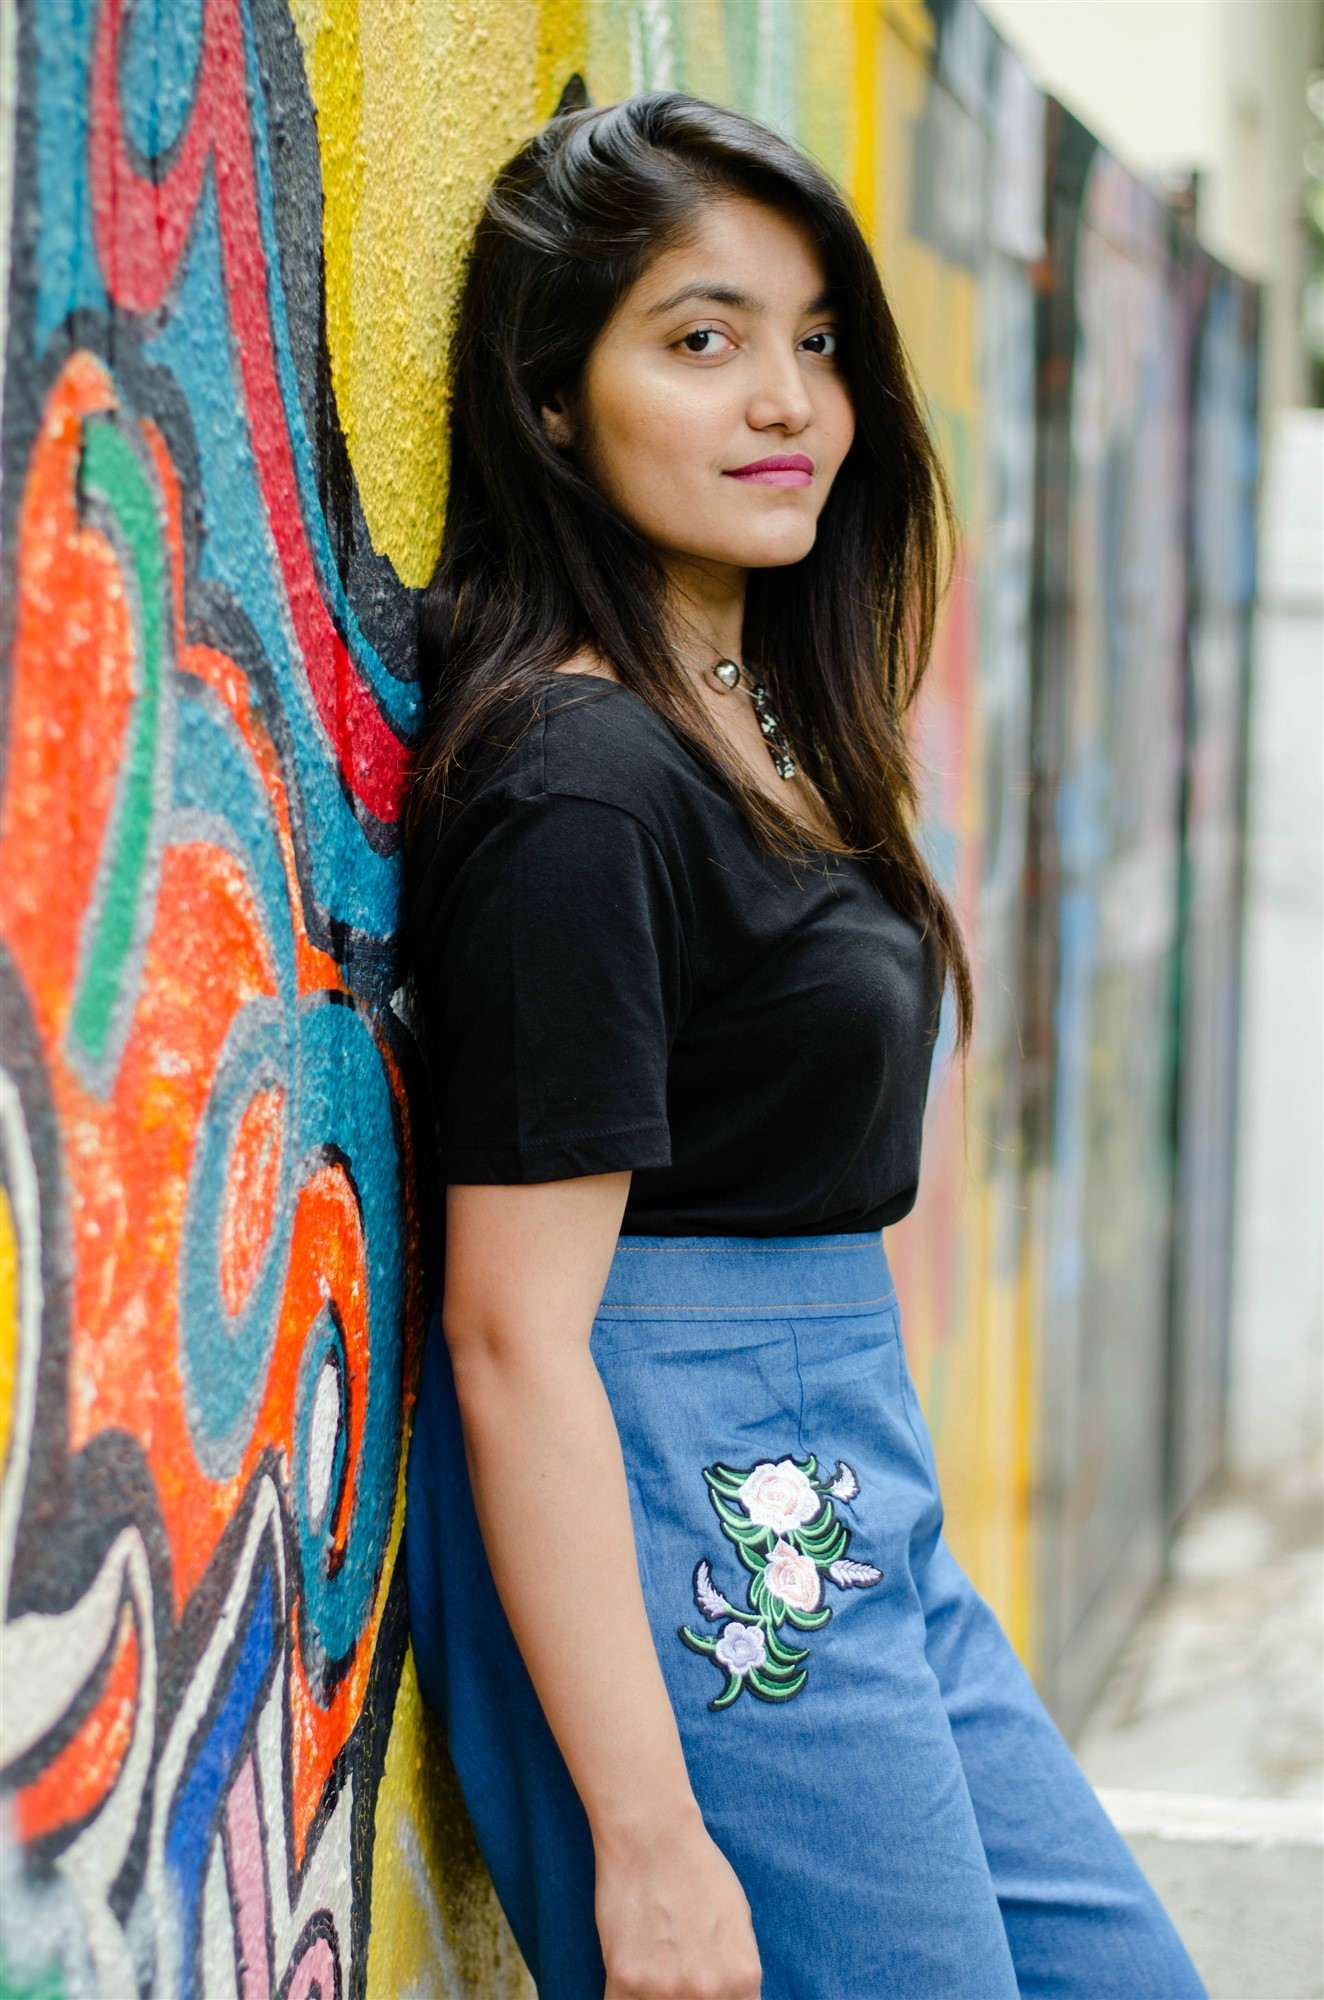 indian blogger princy mascarenhas the jeromy diaries